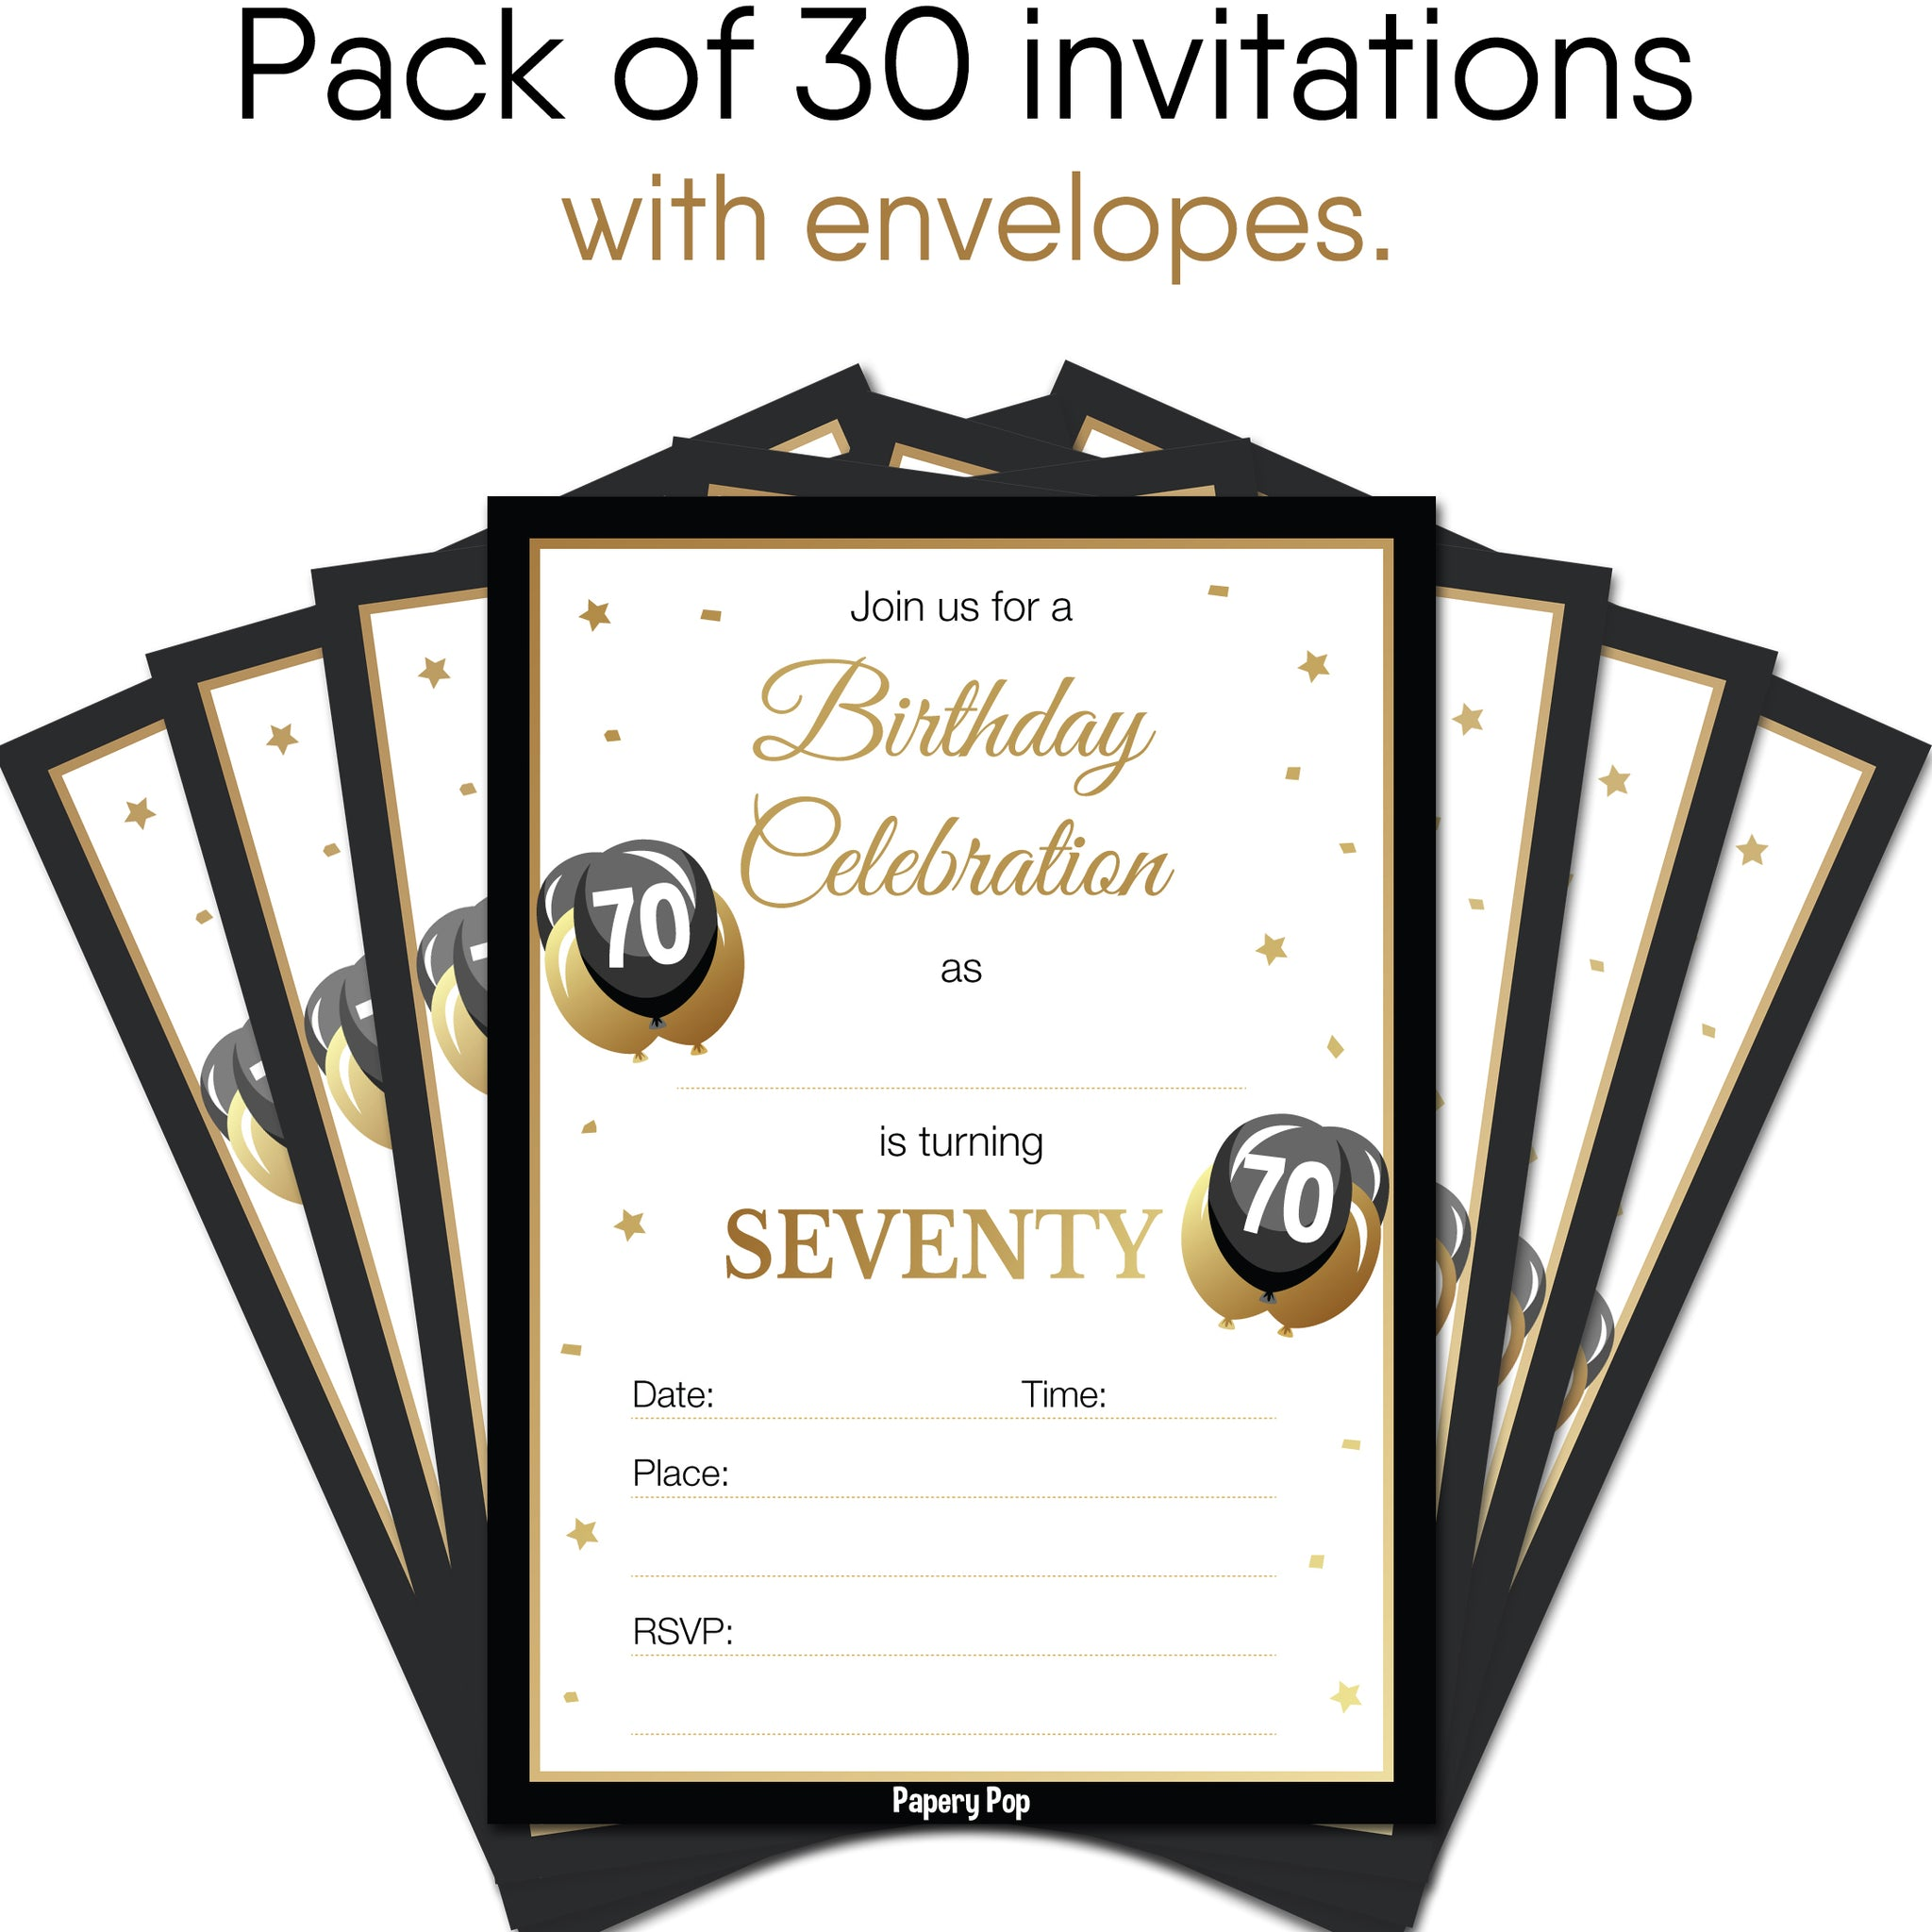 70 Year Old Birthday Invitations With Envelopes 30 Count